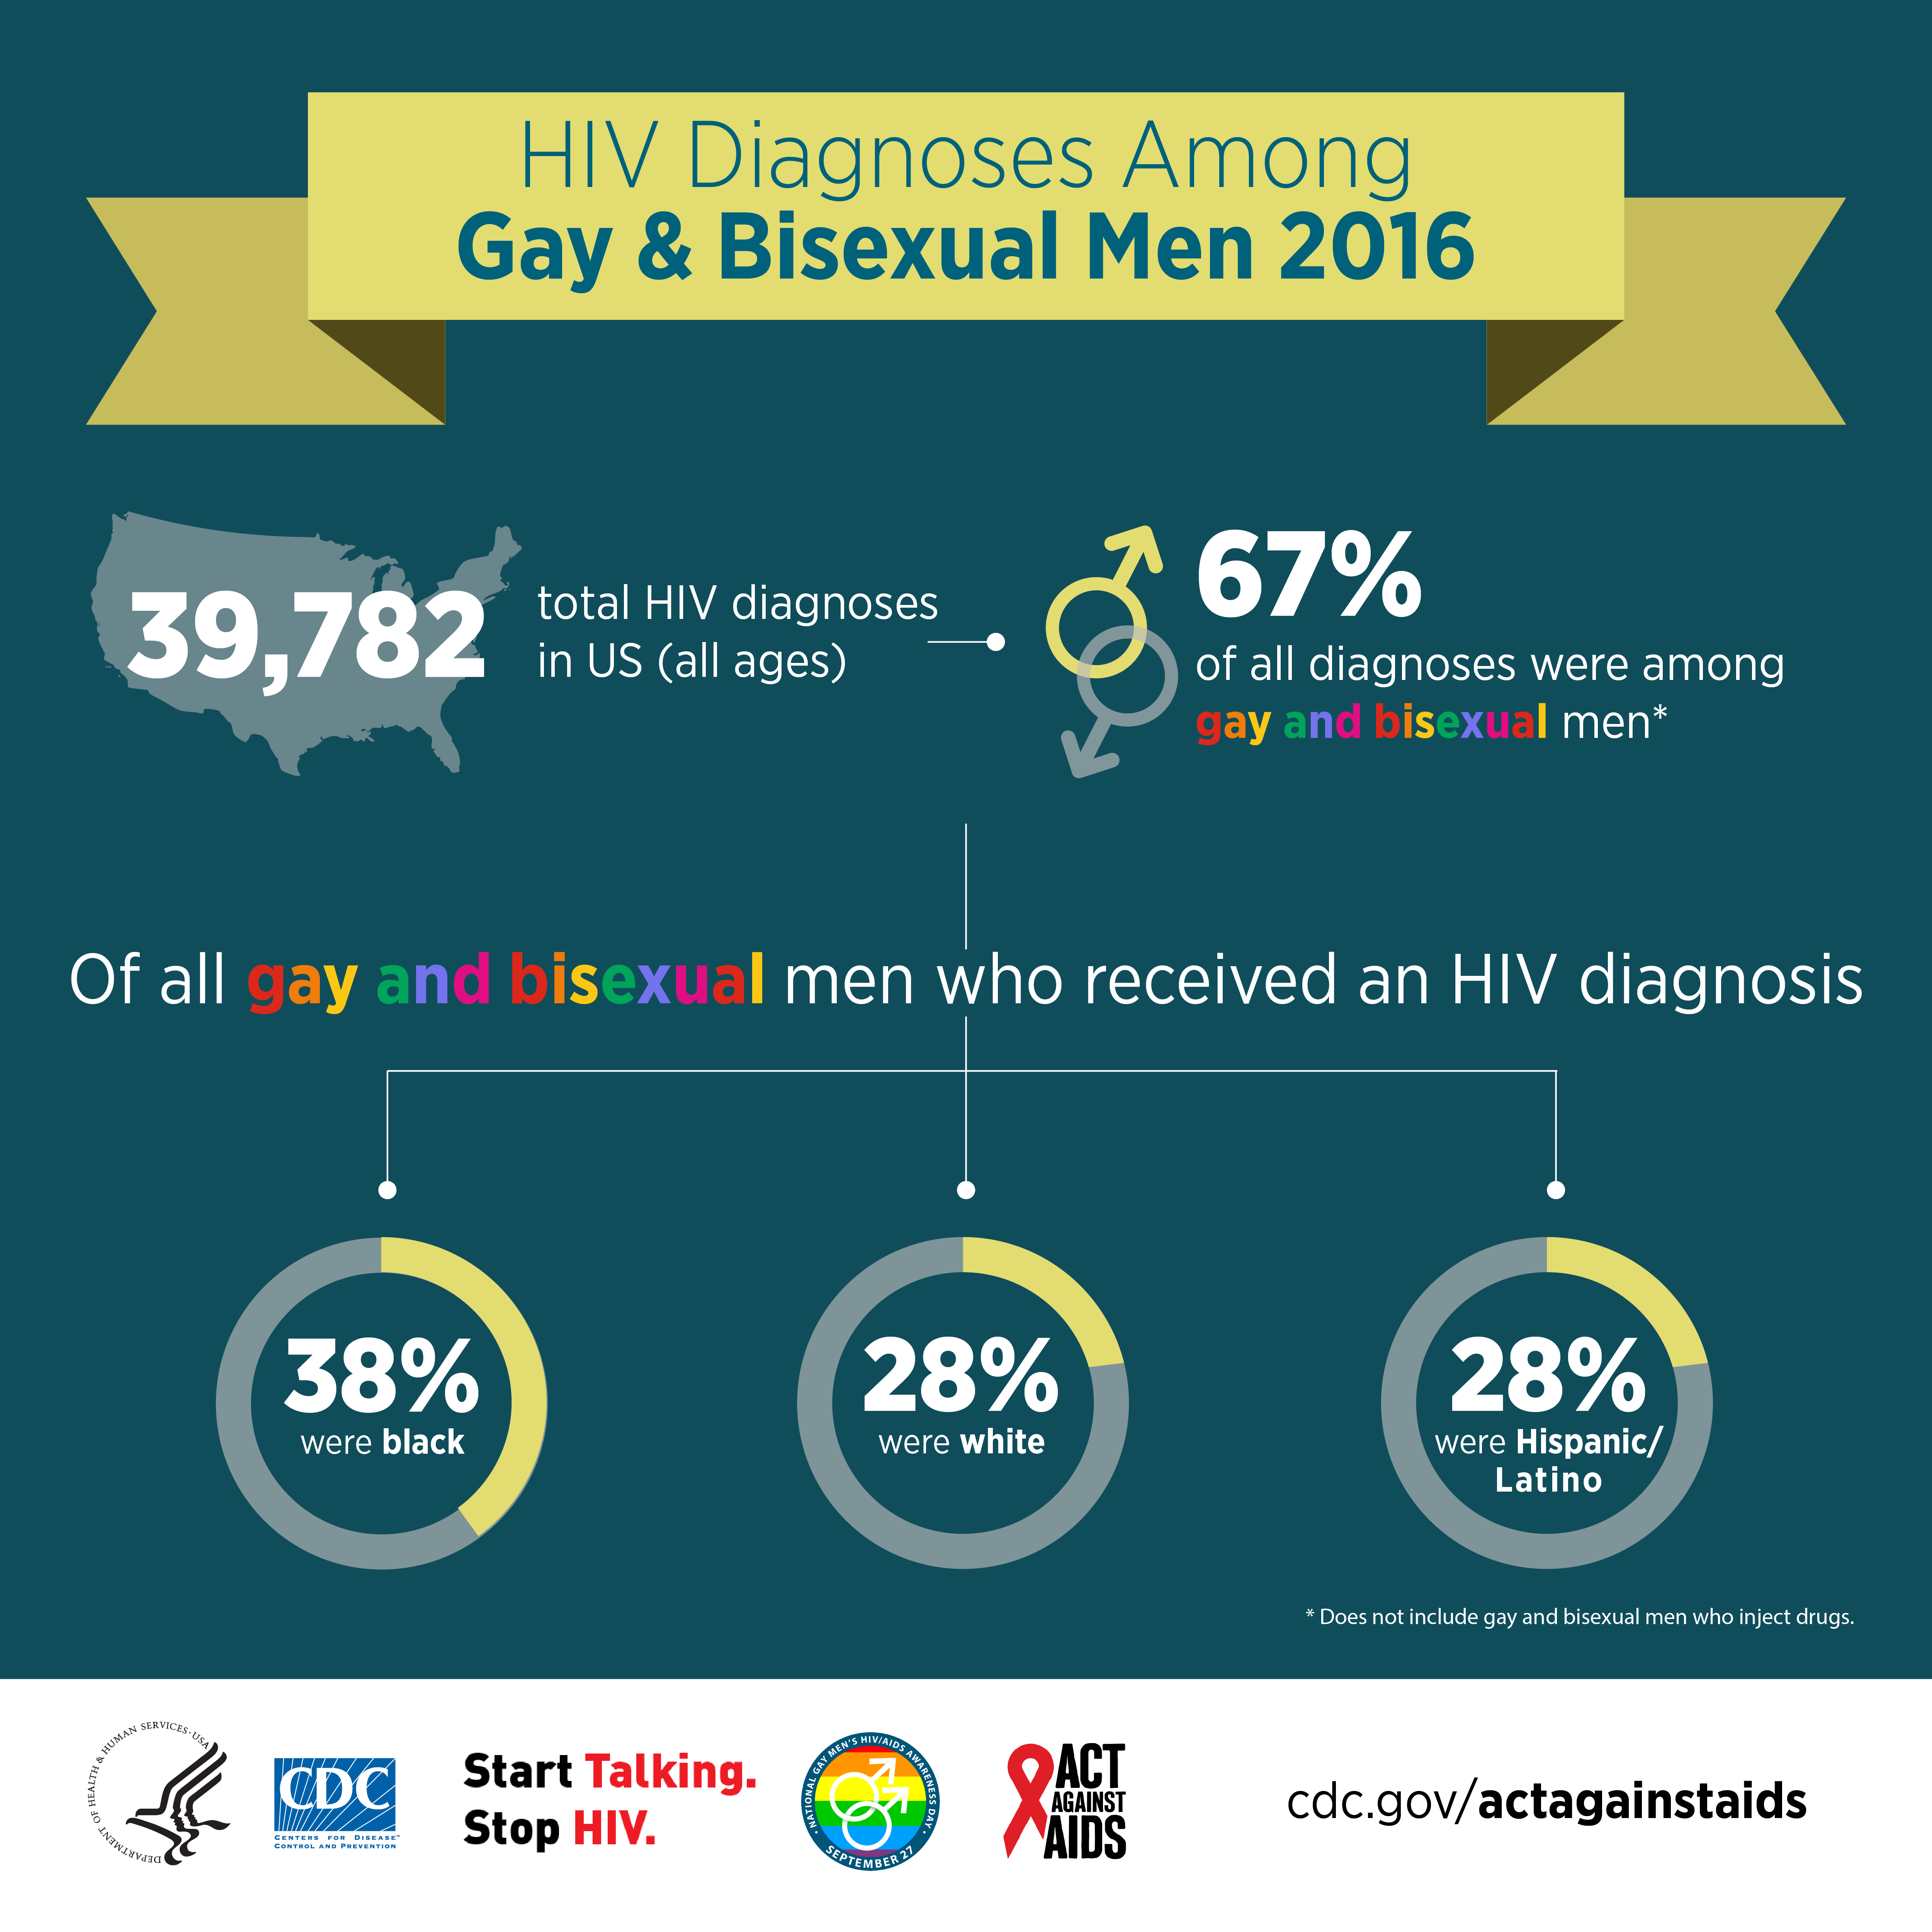 This infographic shows the percentage of HIV diagnoses among gay and bisexual men by race/ethnicity.  In 2015, 39,513 people received an HIV diagnoses in the US. 67% of all diagnoses were among gay and bisexual men. Of all gay and bisexual men diagnosed, 39% were black, 29% were white, and 27% were Hispanic/Latino.